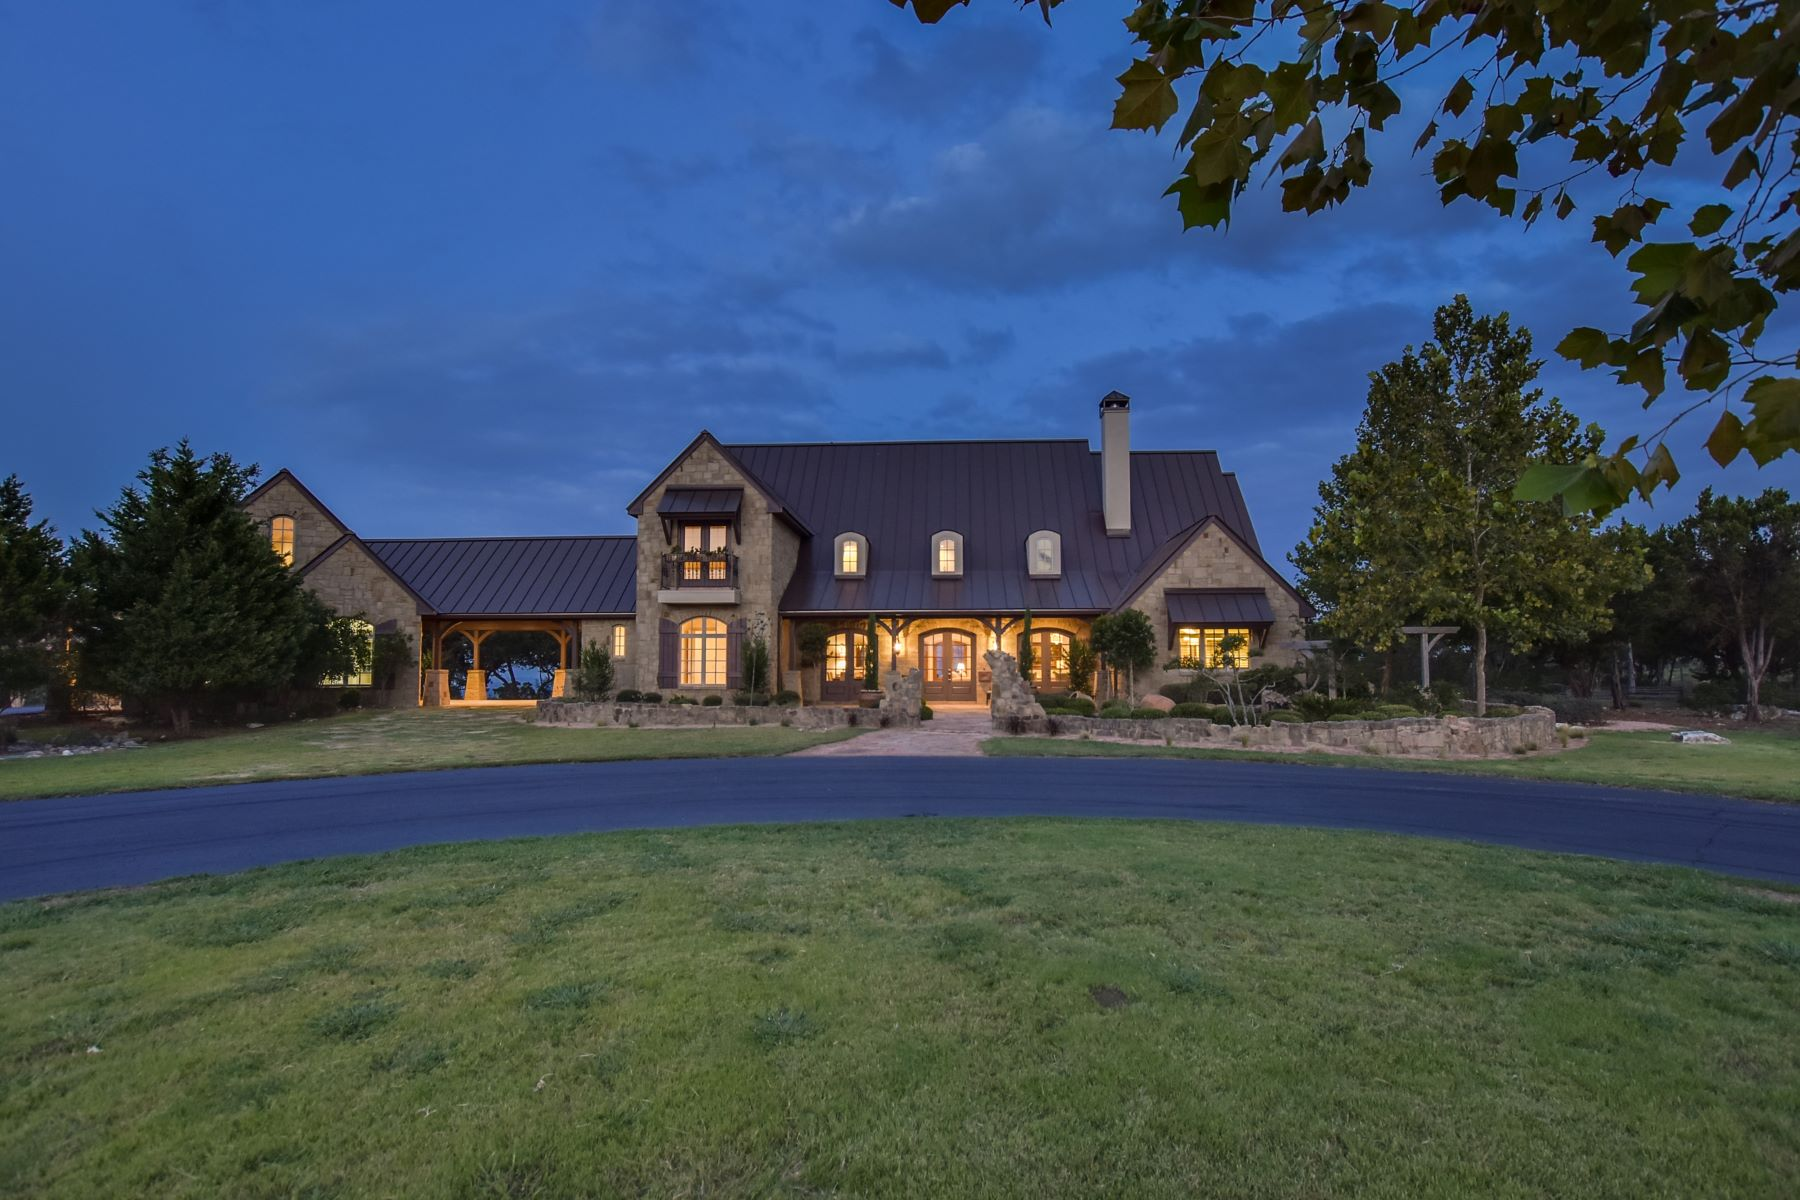 Casa Unifamiliar por un Venta en Panoramic View of the Hill Country 167 Estancia Ln Boerne, Texas 78006 Estados Unidos